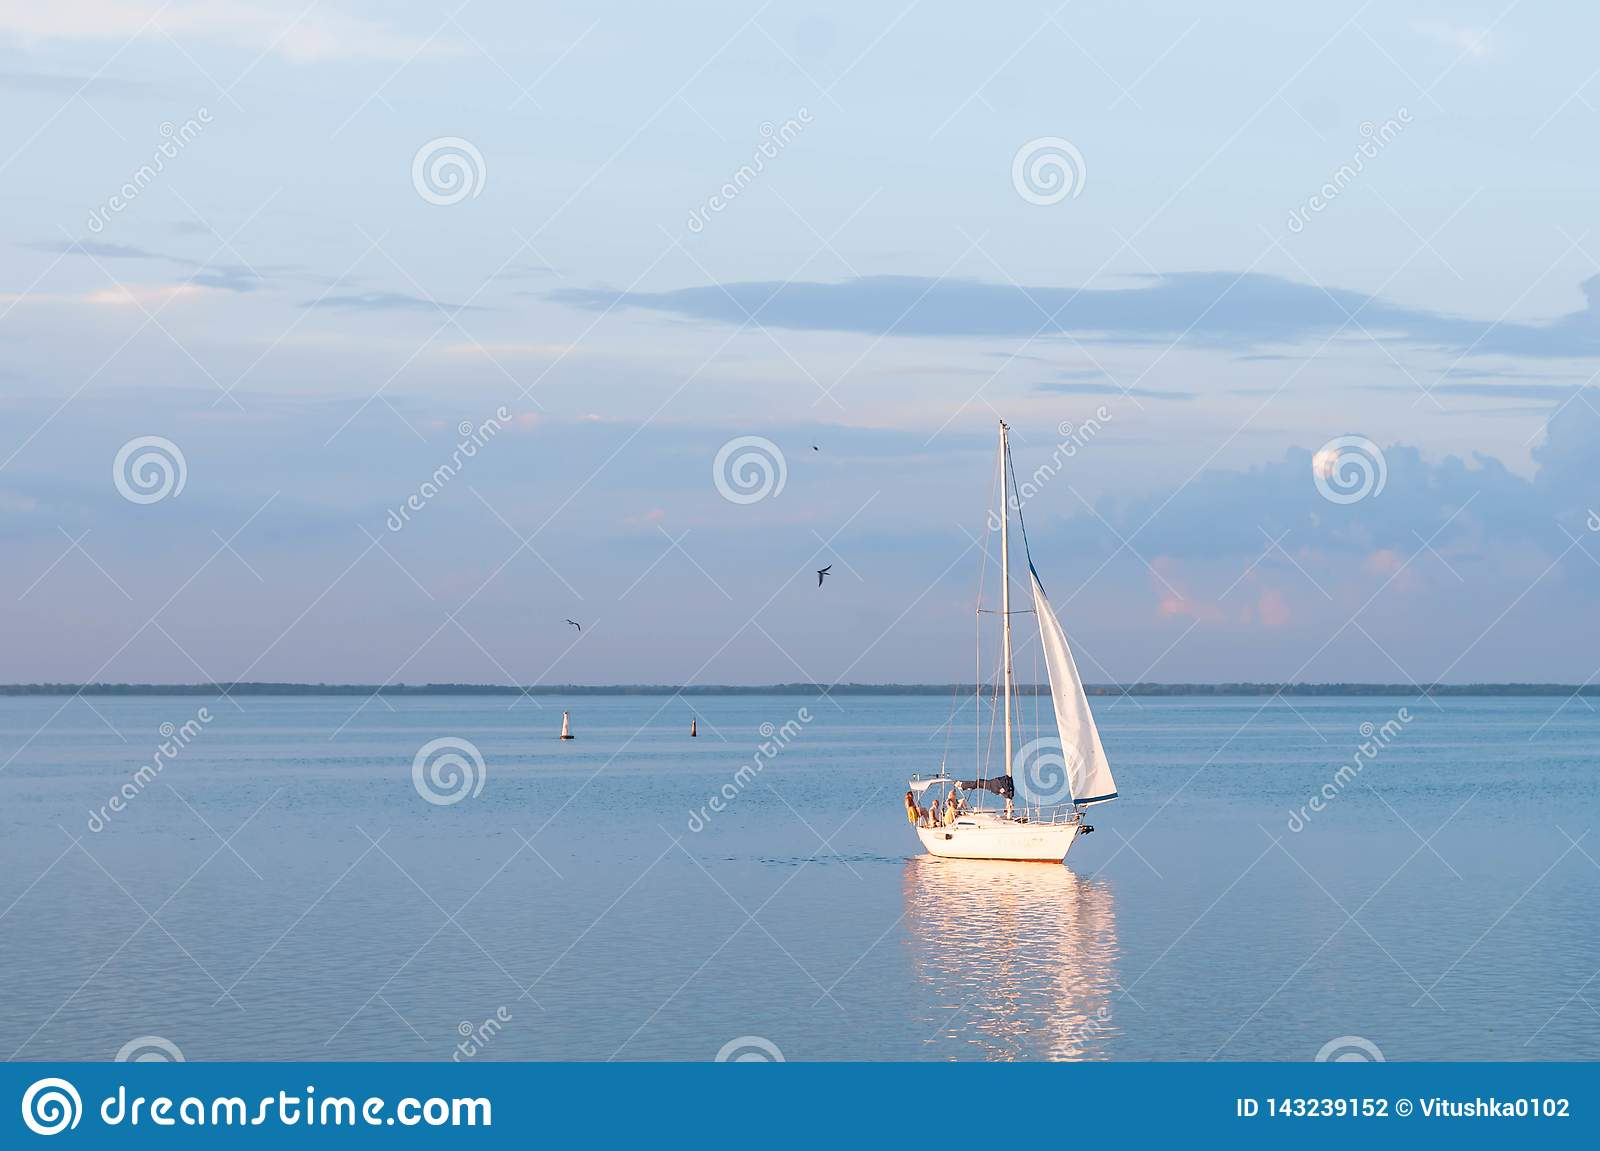 Cherkasy, Ukraine - 07.20.2018: white sailing boat sails on river and casts orange glowing reflection